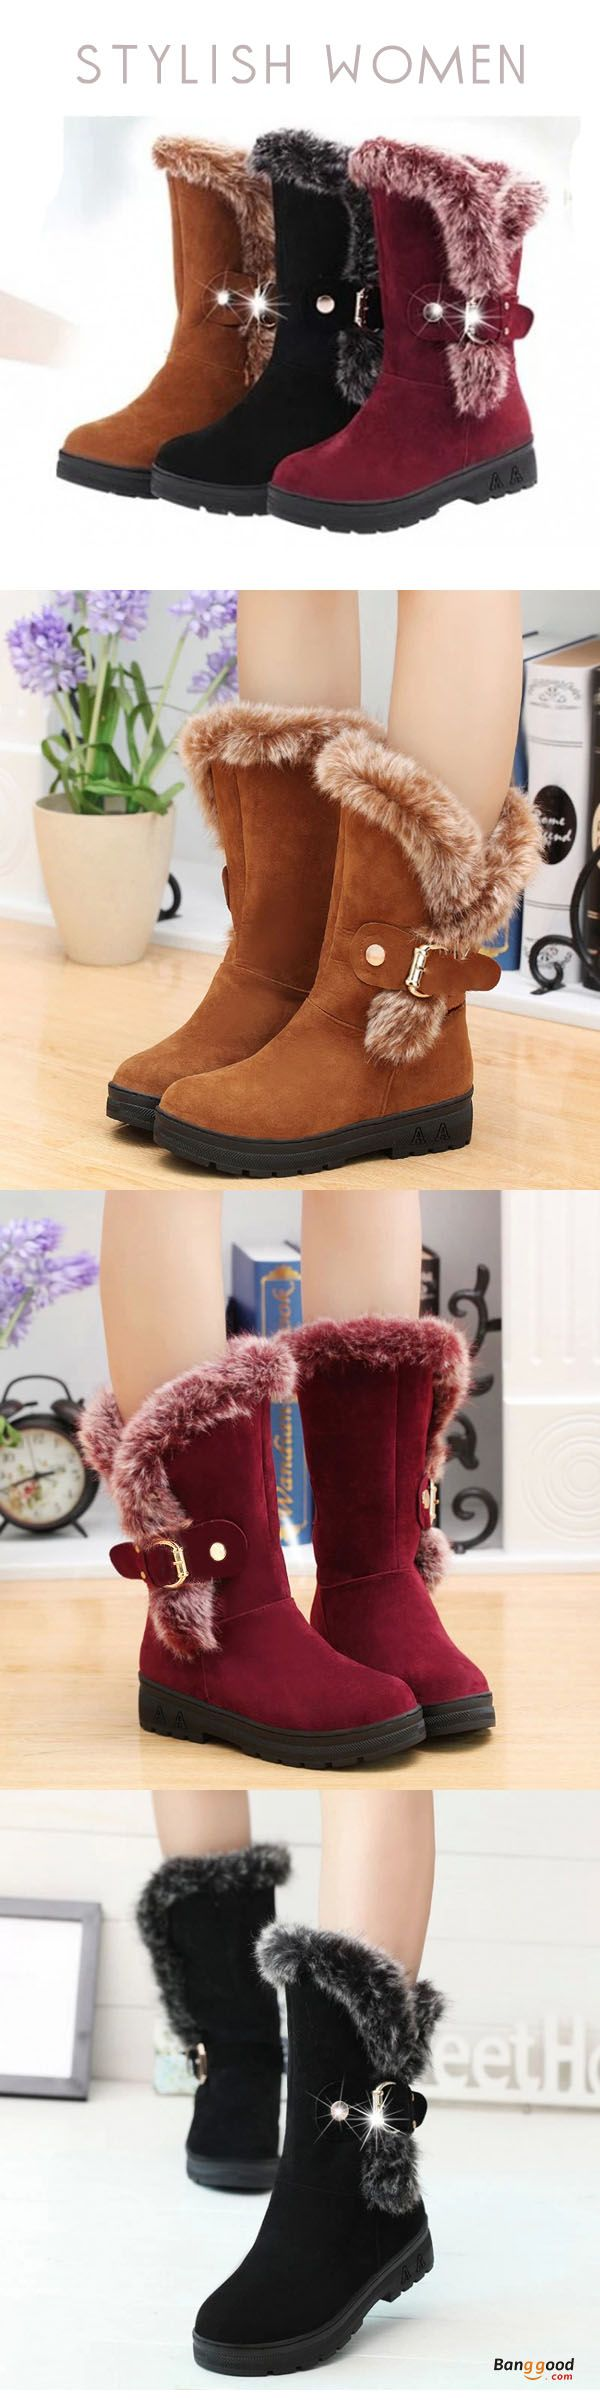 US$32.99 + Free shipping.  Women Winter Boots Ankle Short Boots Artificial Fur Snow Boots. US Size: 5-10. Color: Black, Wine Red, Camel  >>> To view further, visit now.